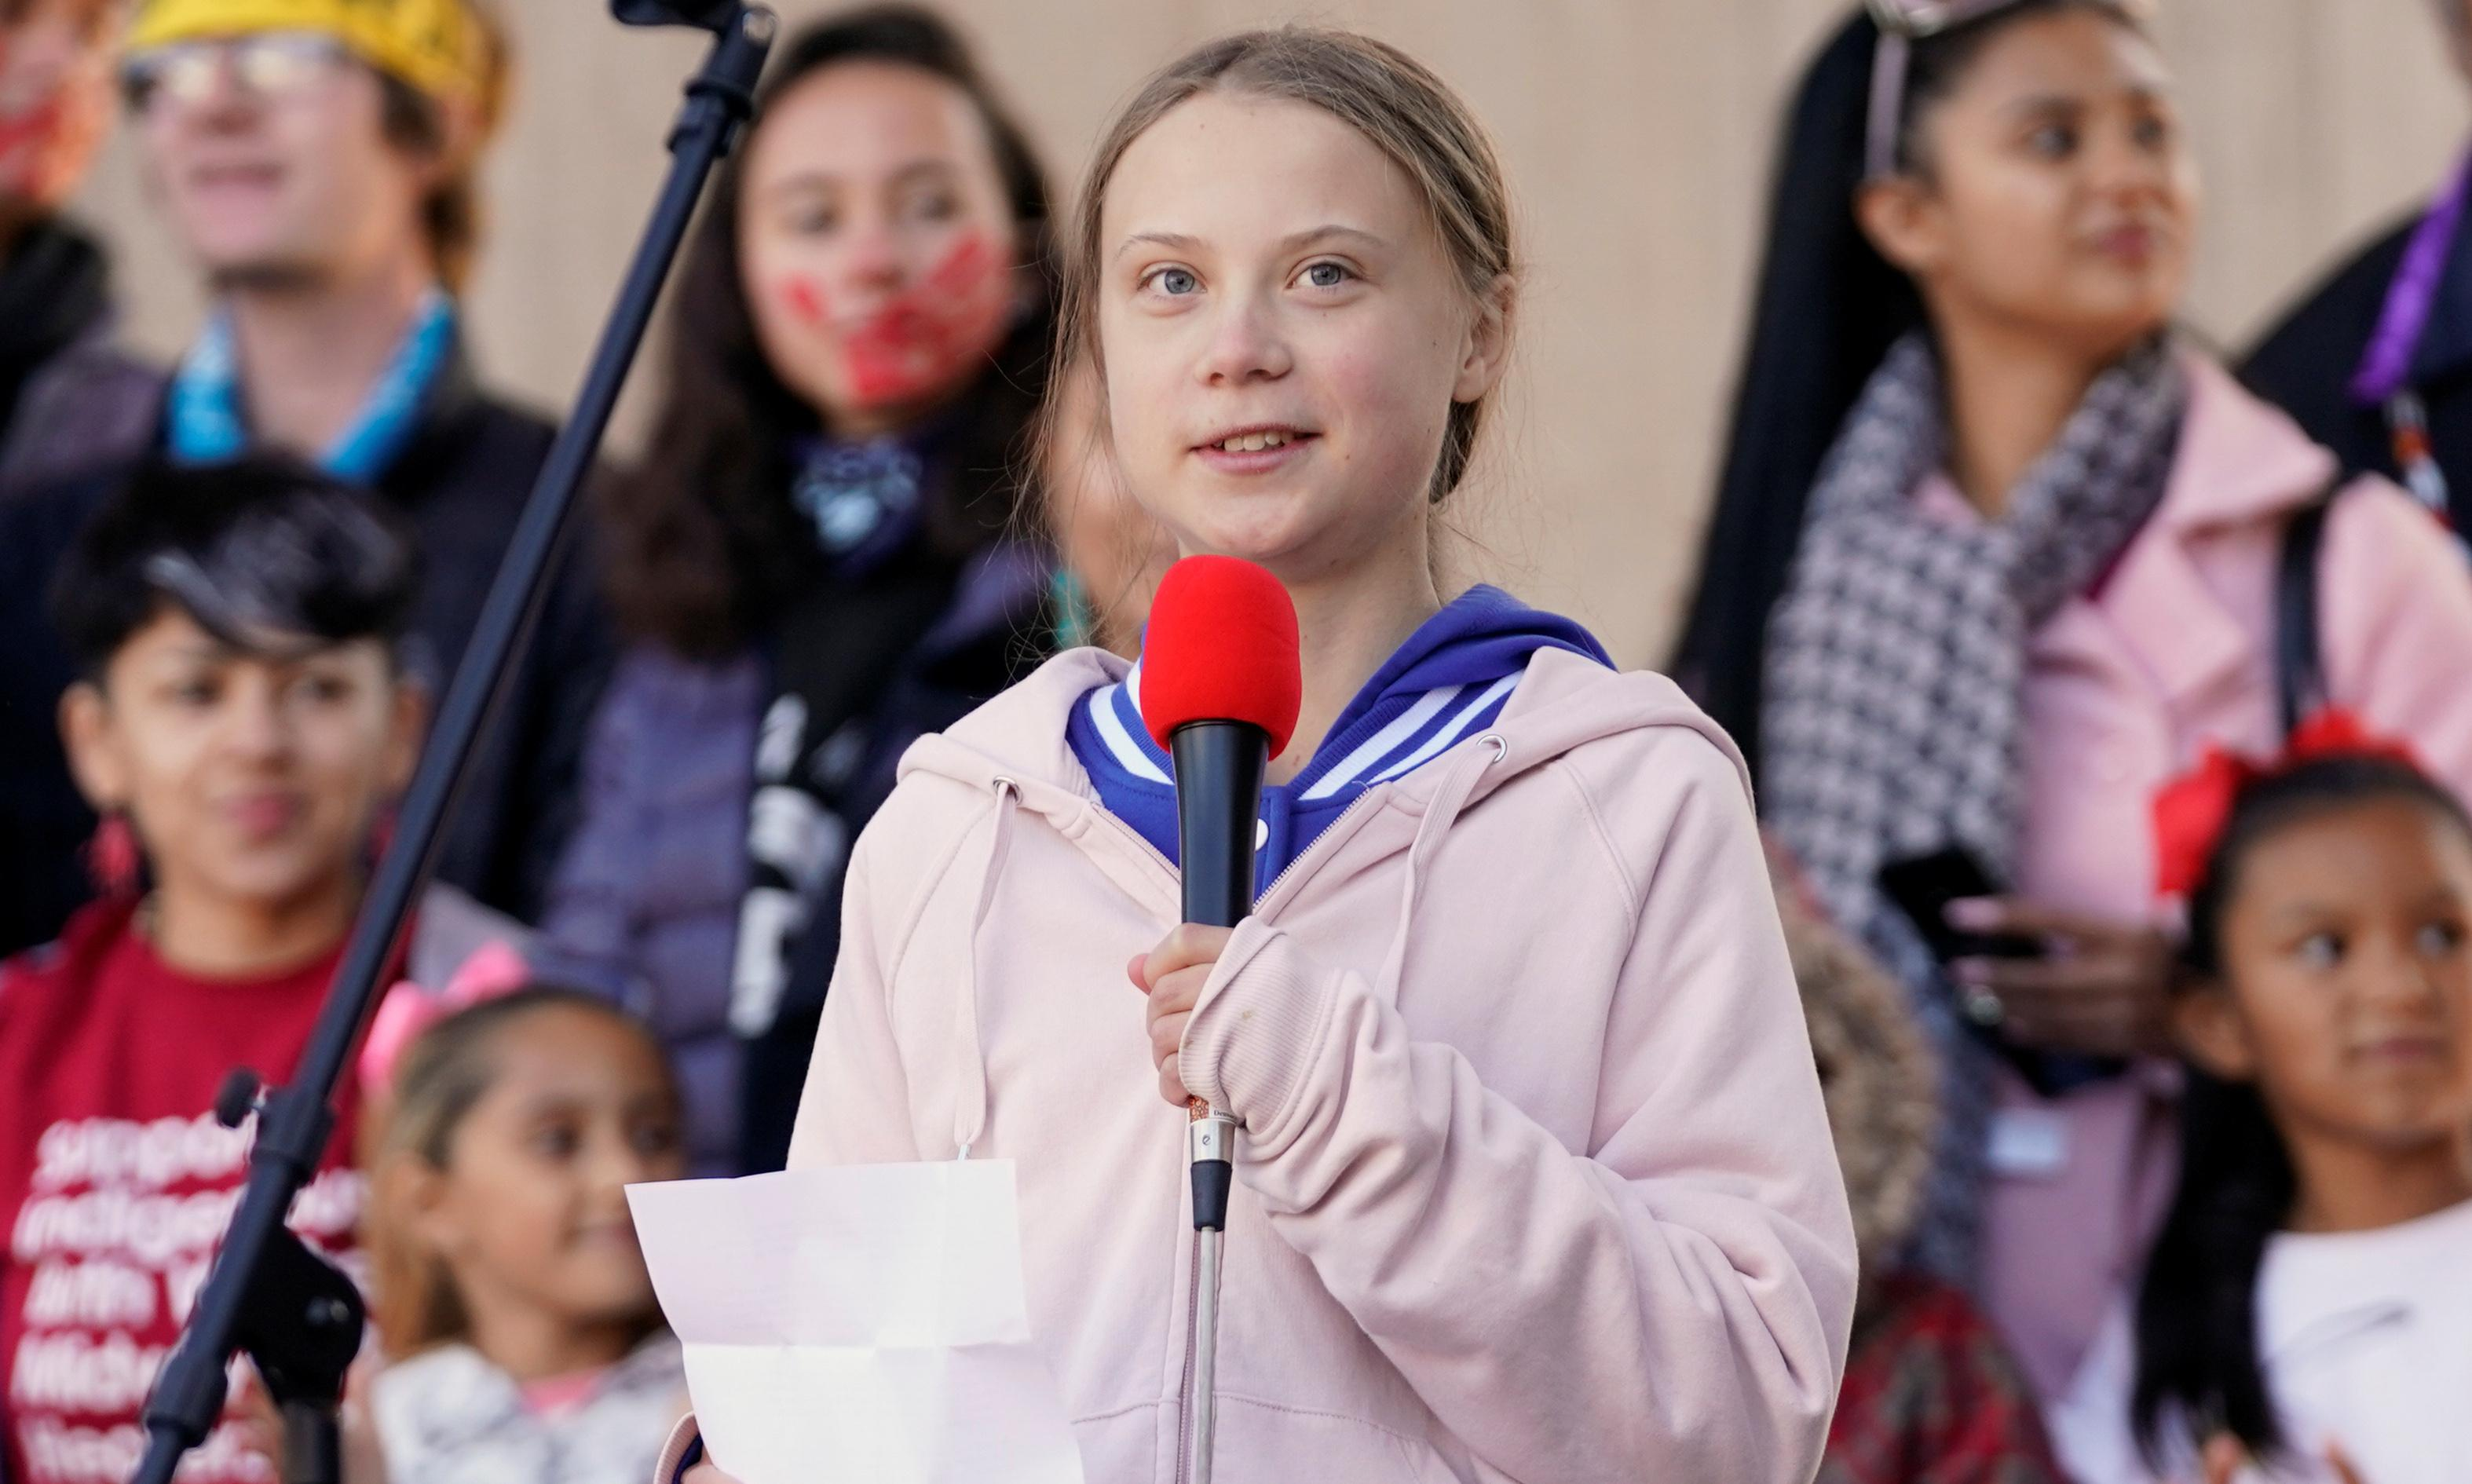 'If they don't do it, we will': Greta Thunberg rallies climate strikers for long haul